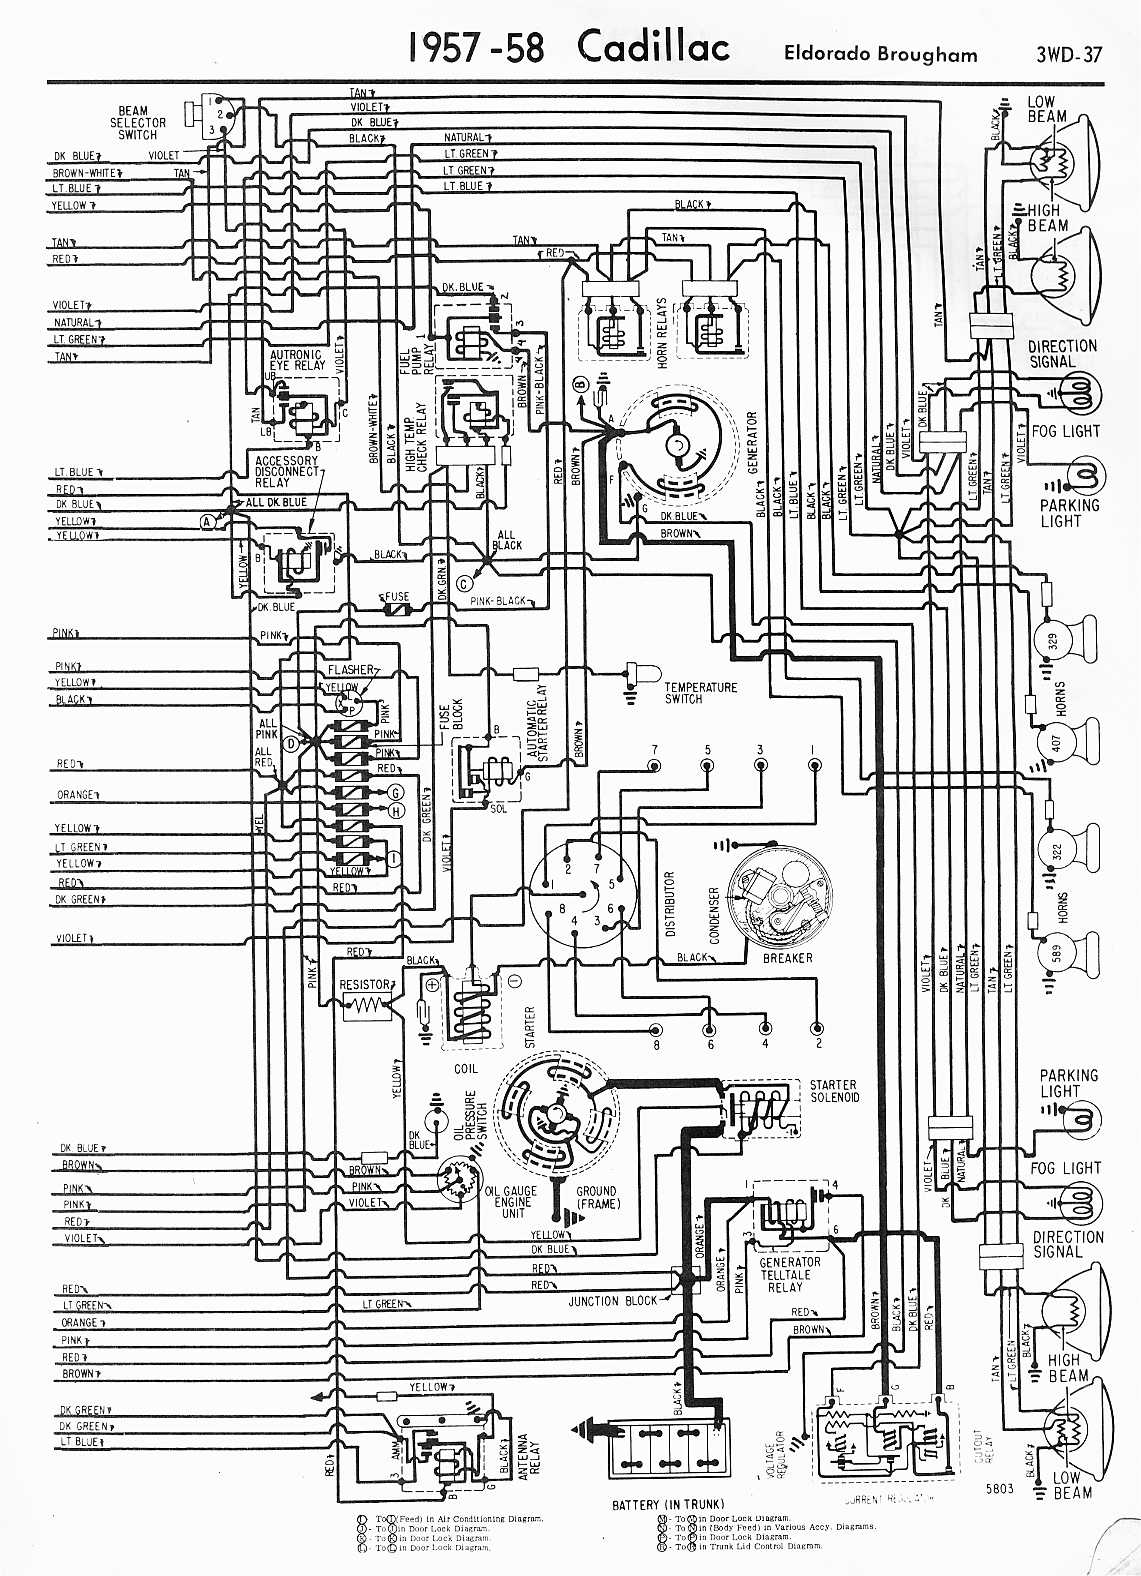 cadillac wiring diagrams: 1957-1965  the old car manual project